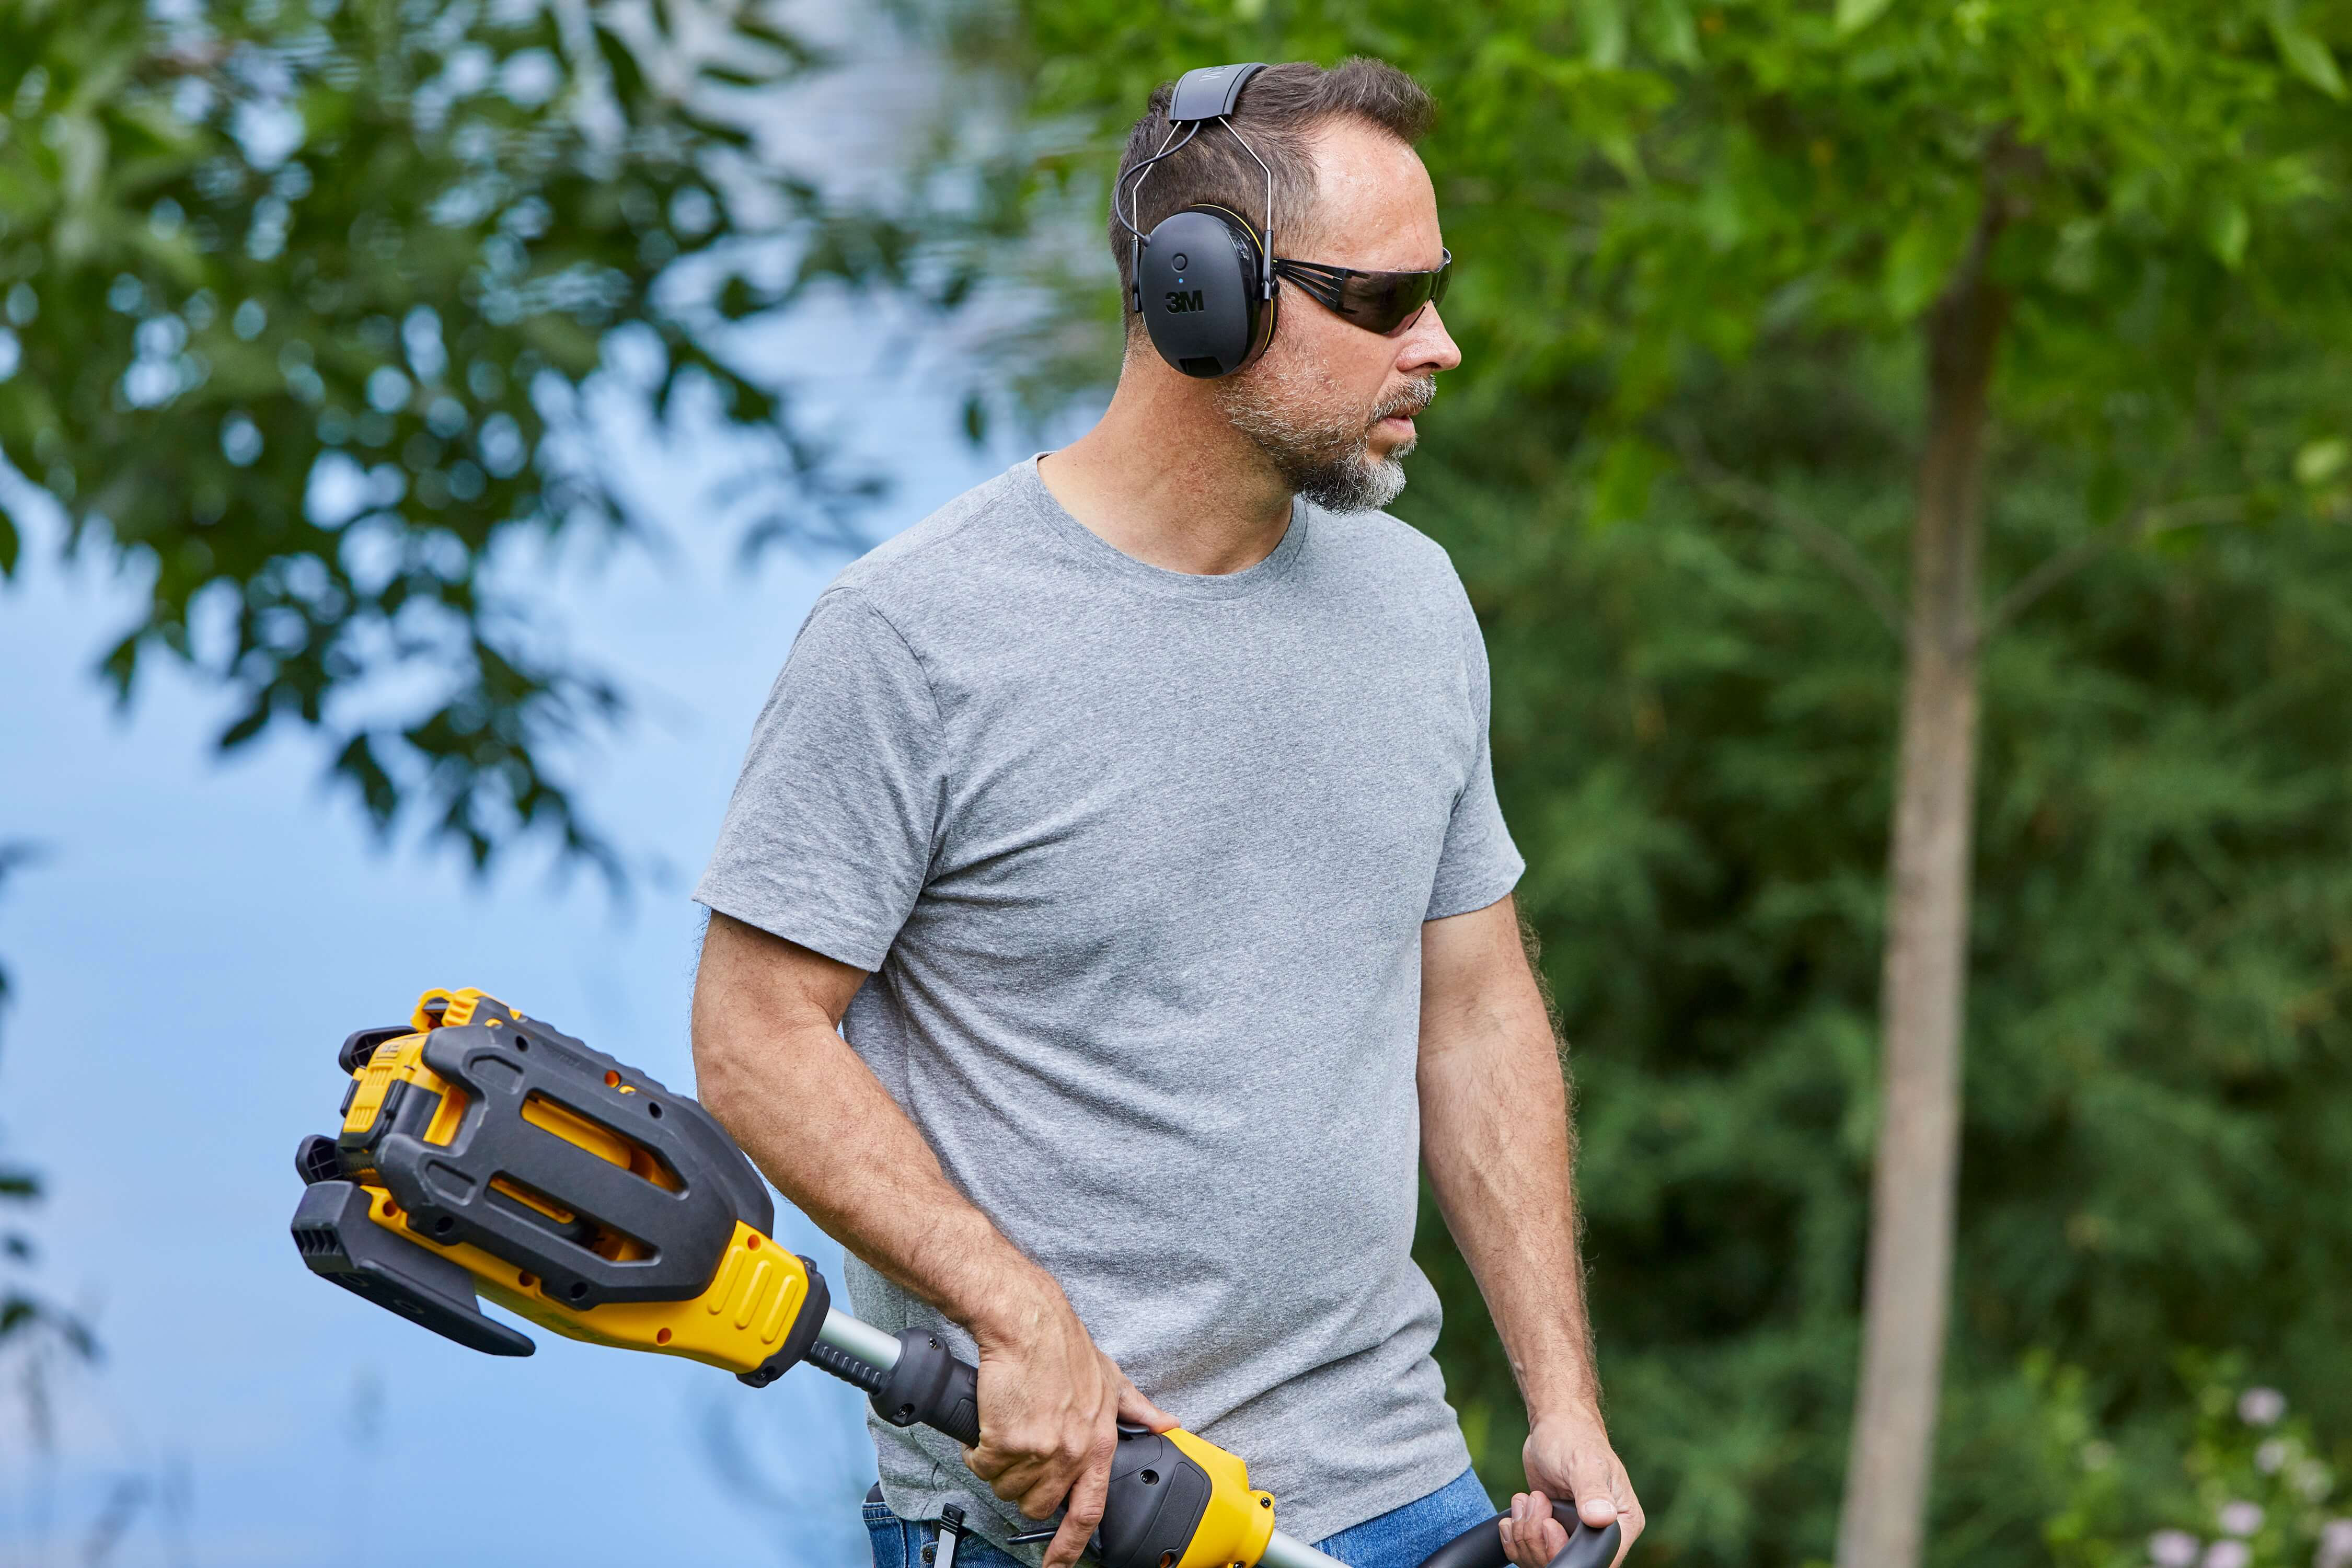 man in safety gear with weed trimmer